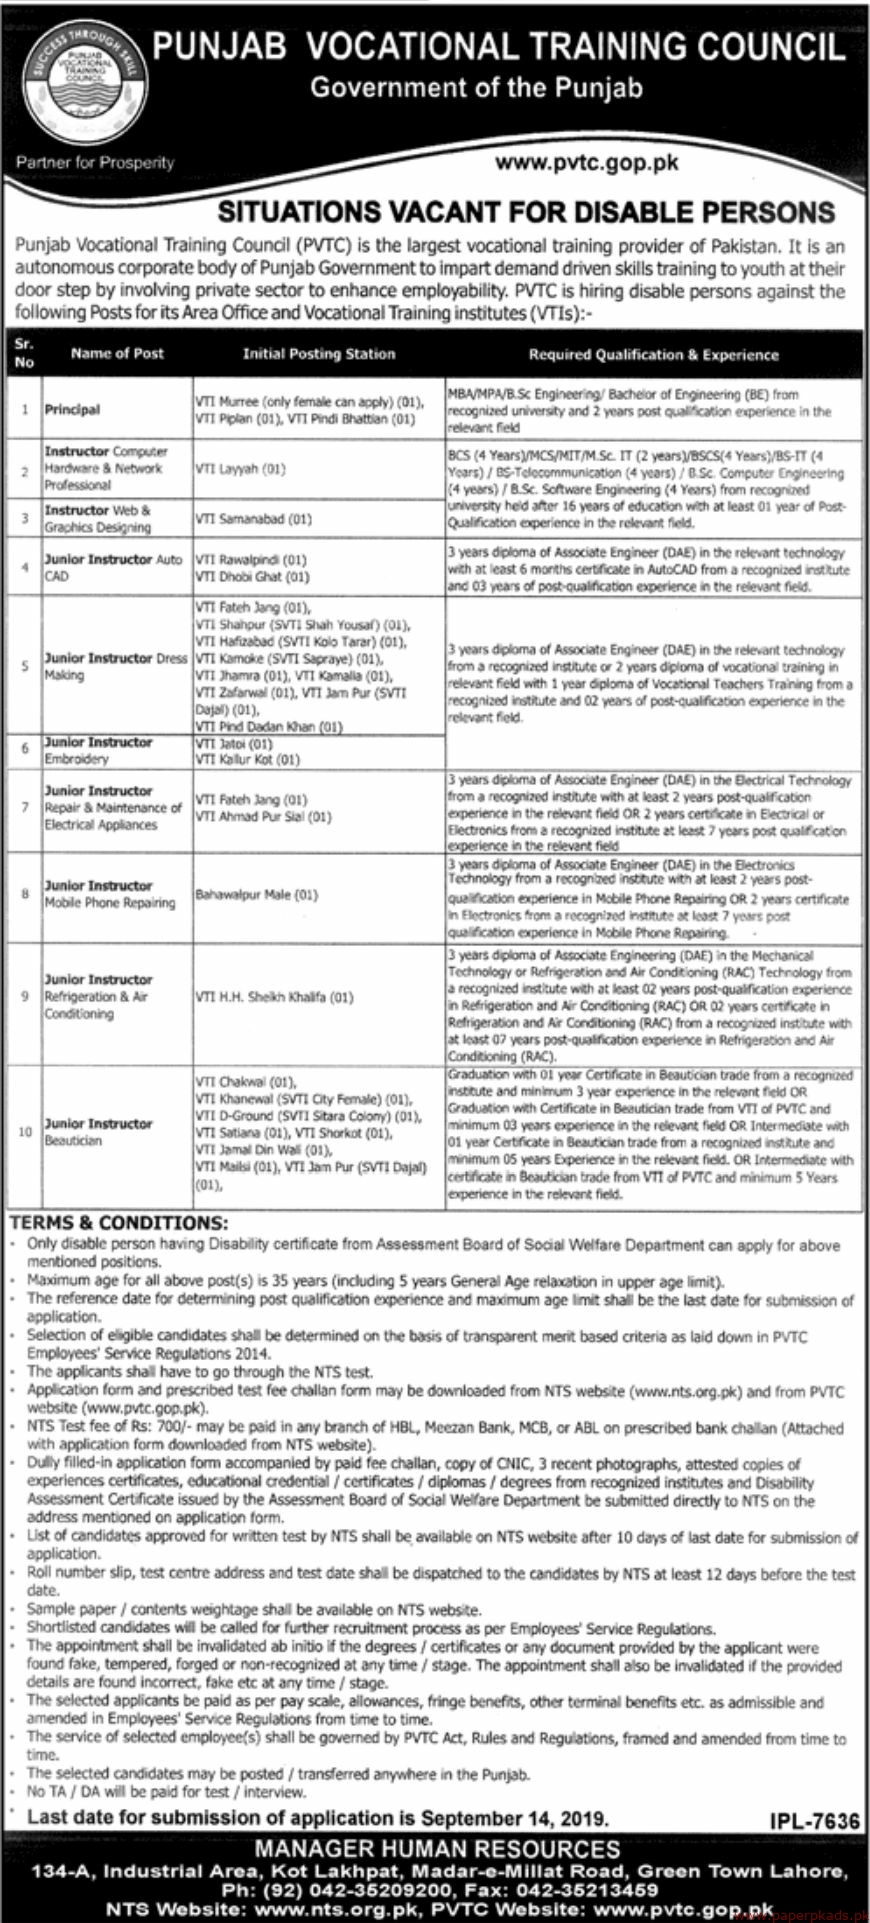 Punjab Vocational Training Council (PVTC) Government of the Punjab Jobs 2019 Latest